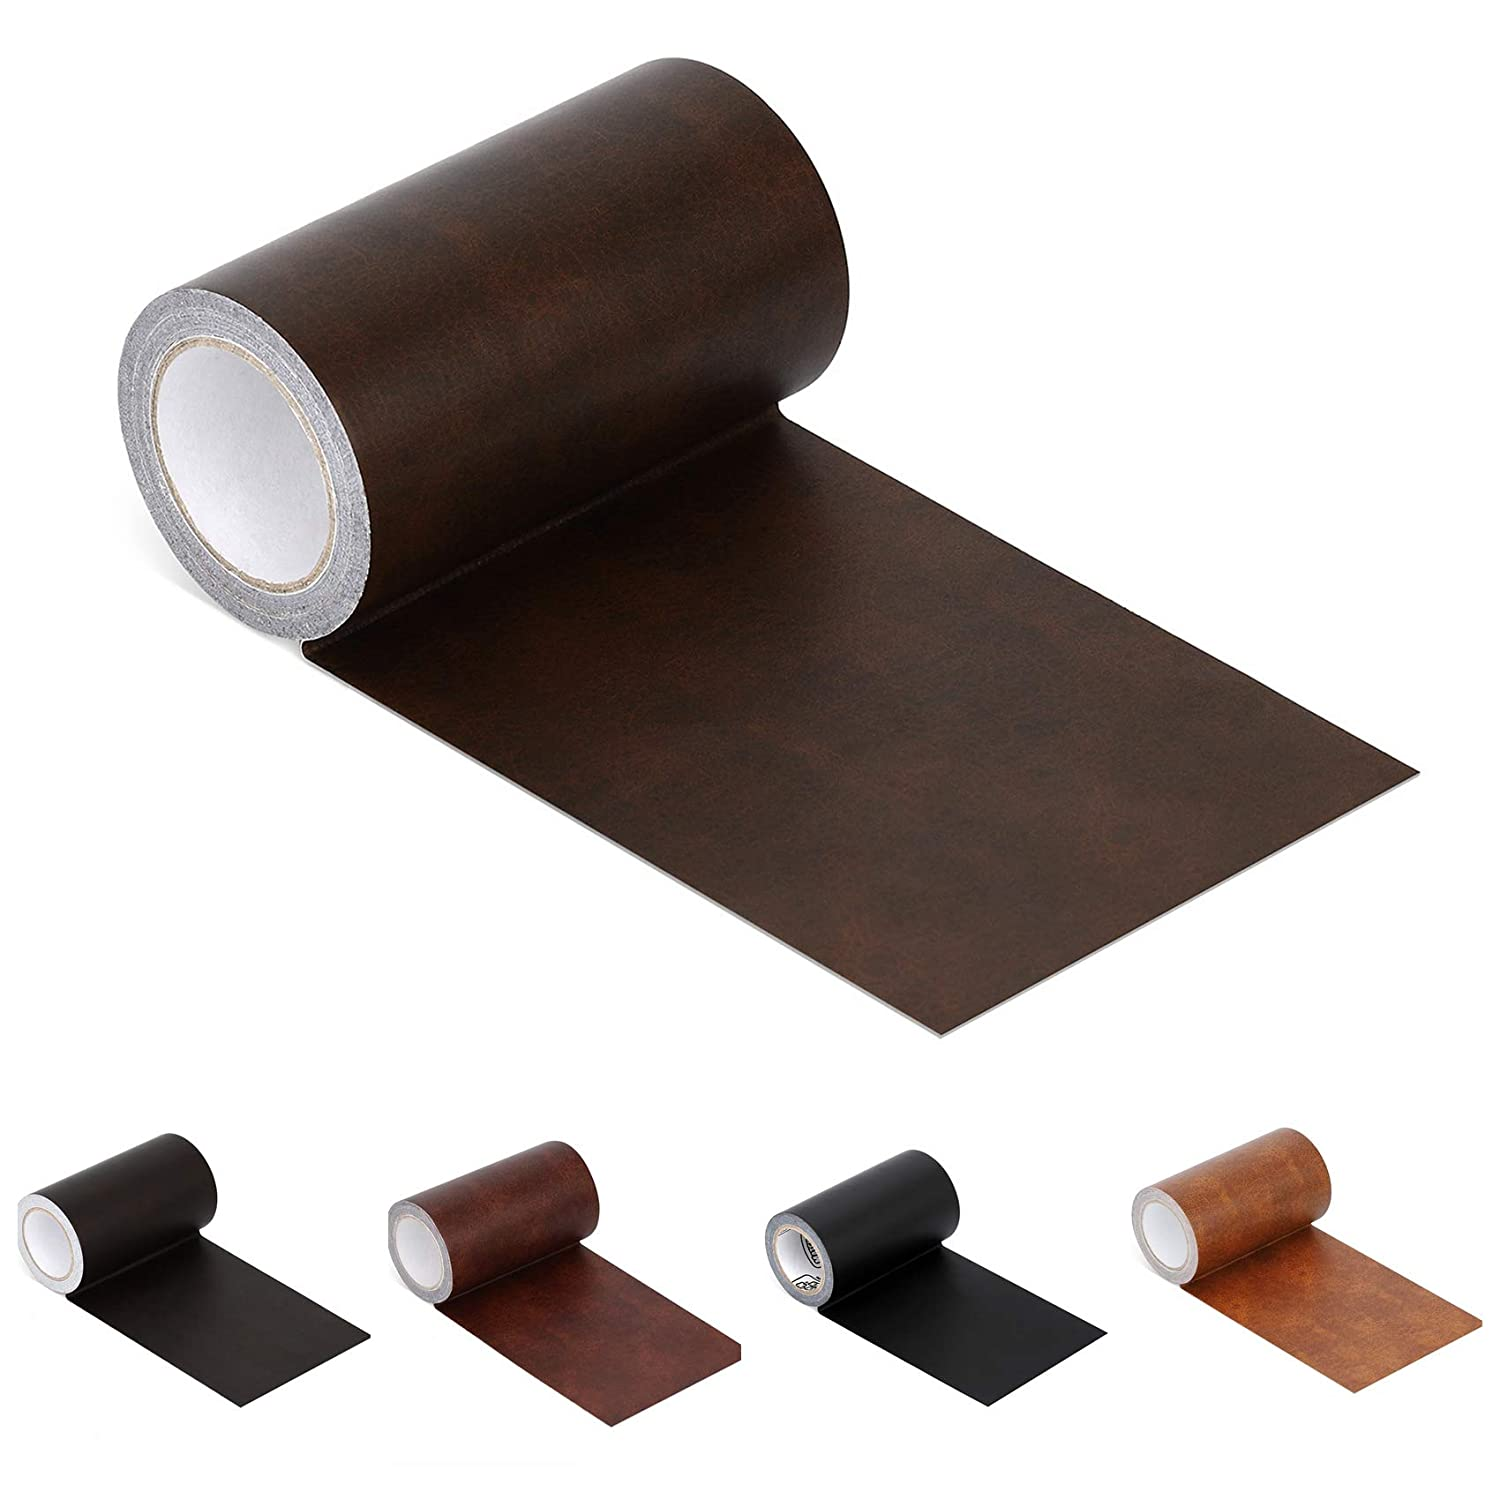 Pleasant Leather Repair Tape Patch Leather Adhesive For Sofas Car Seats Handbags Jackets First Aid Patch 2 4X15 Dark Brown Leather Unemploymentrelief Wooden Chair Designs For Living Room Unemploymentrelieforg